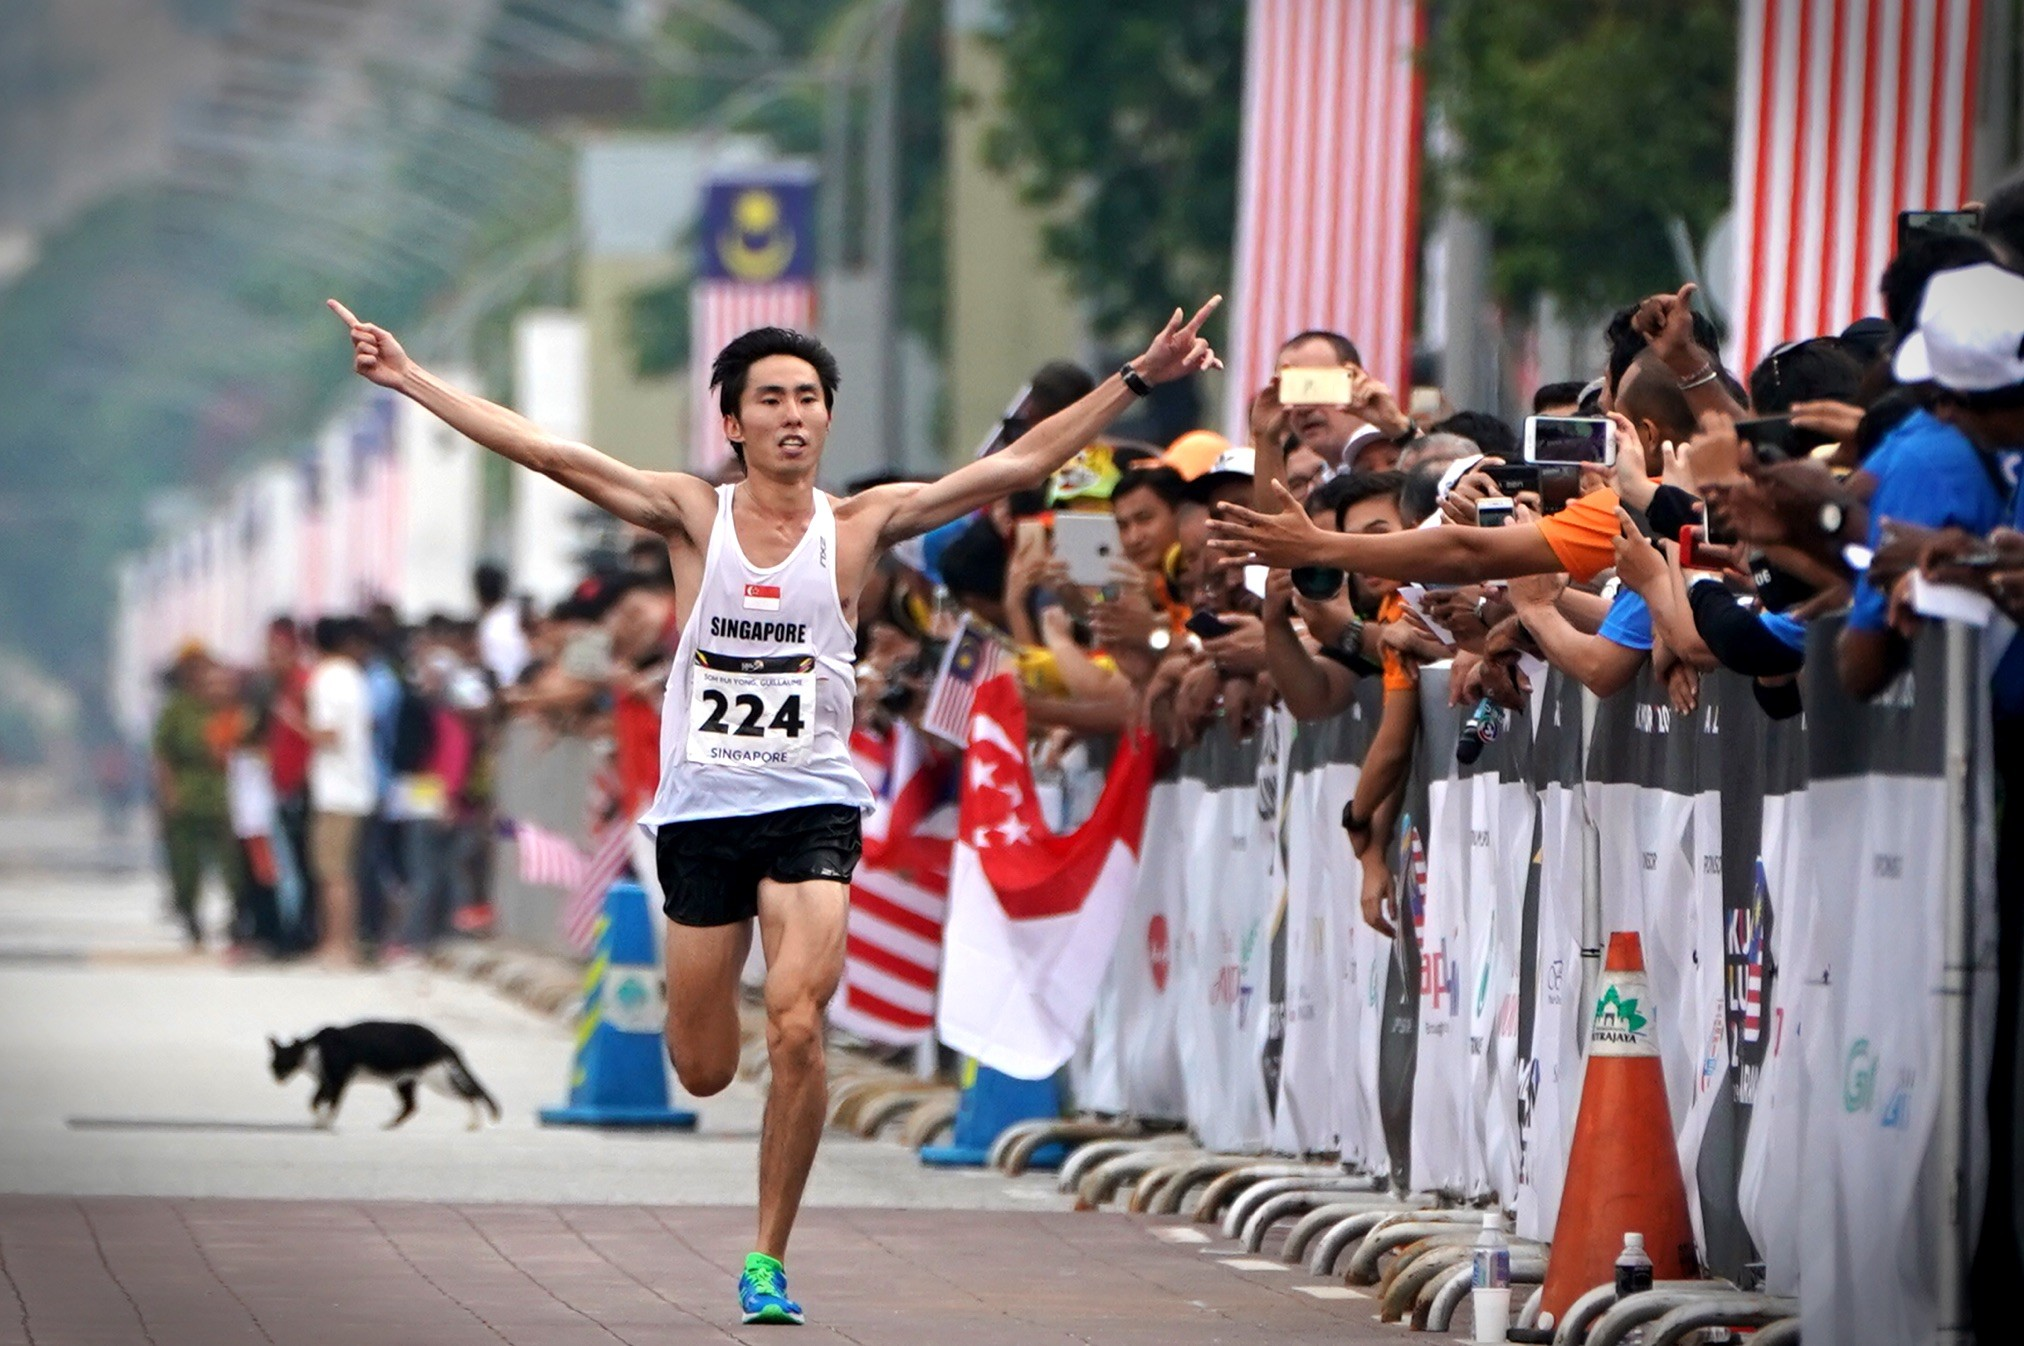 Singapore Fastest Half Marathoner, Soh Rui Yong, getting ready for the World Championships